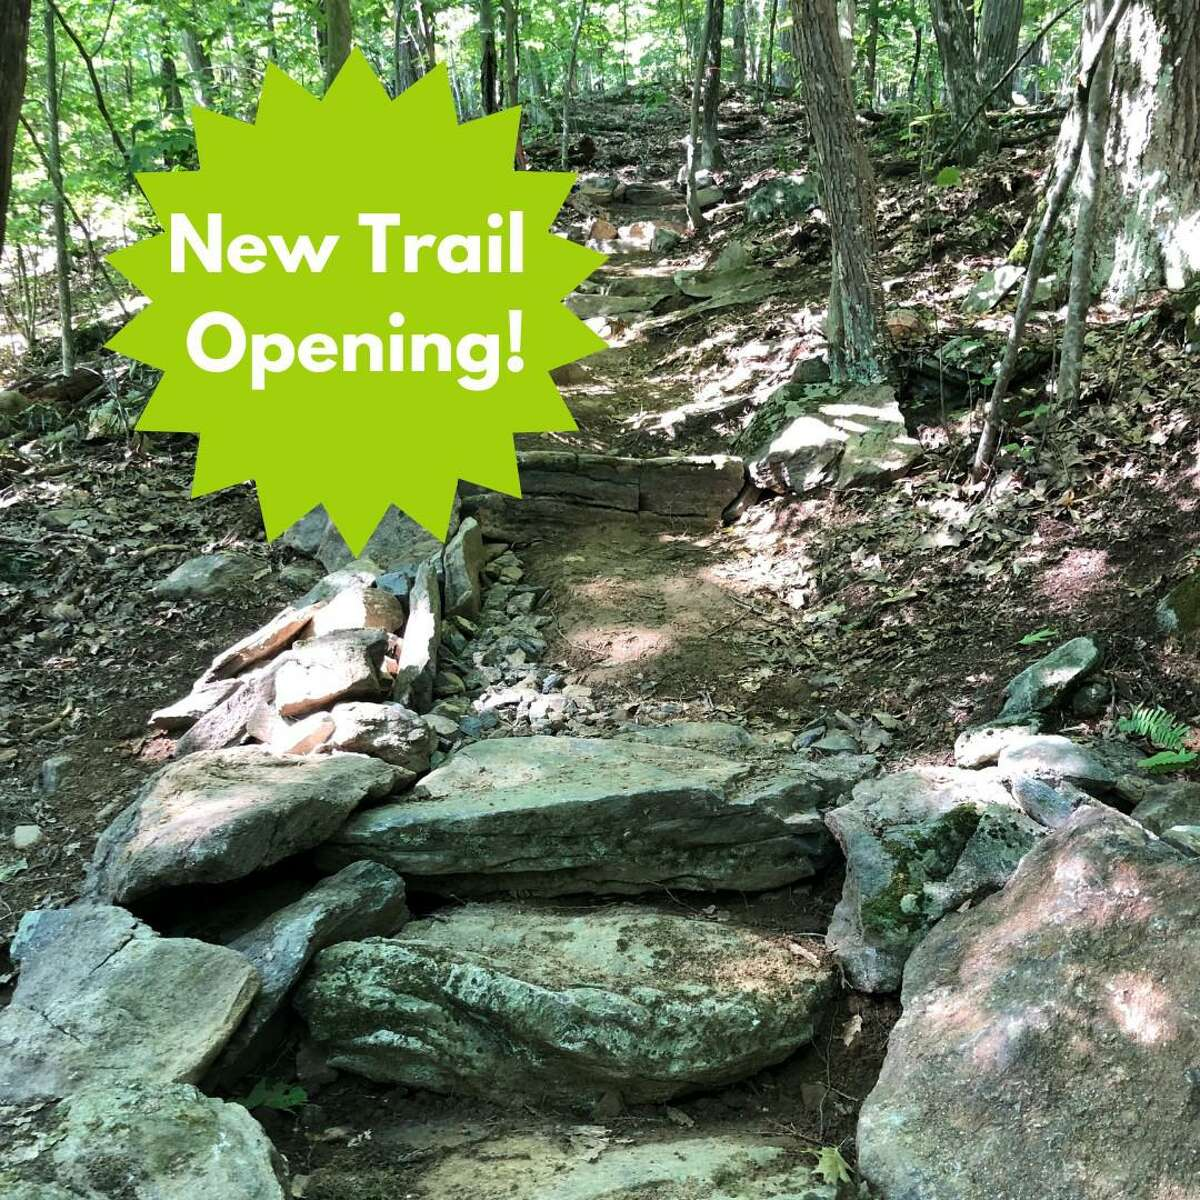 Northwest Connecticut Land Conservancy is holding a series of fall hikes in October. The conservancy's grand opening of its Mallory Trails is scheduled for Oct. 10.